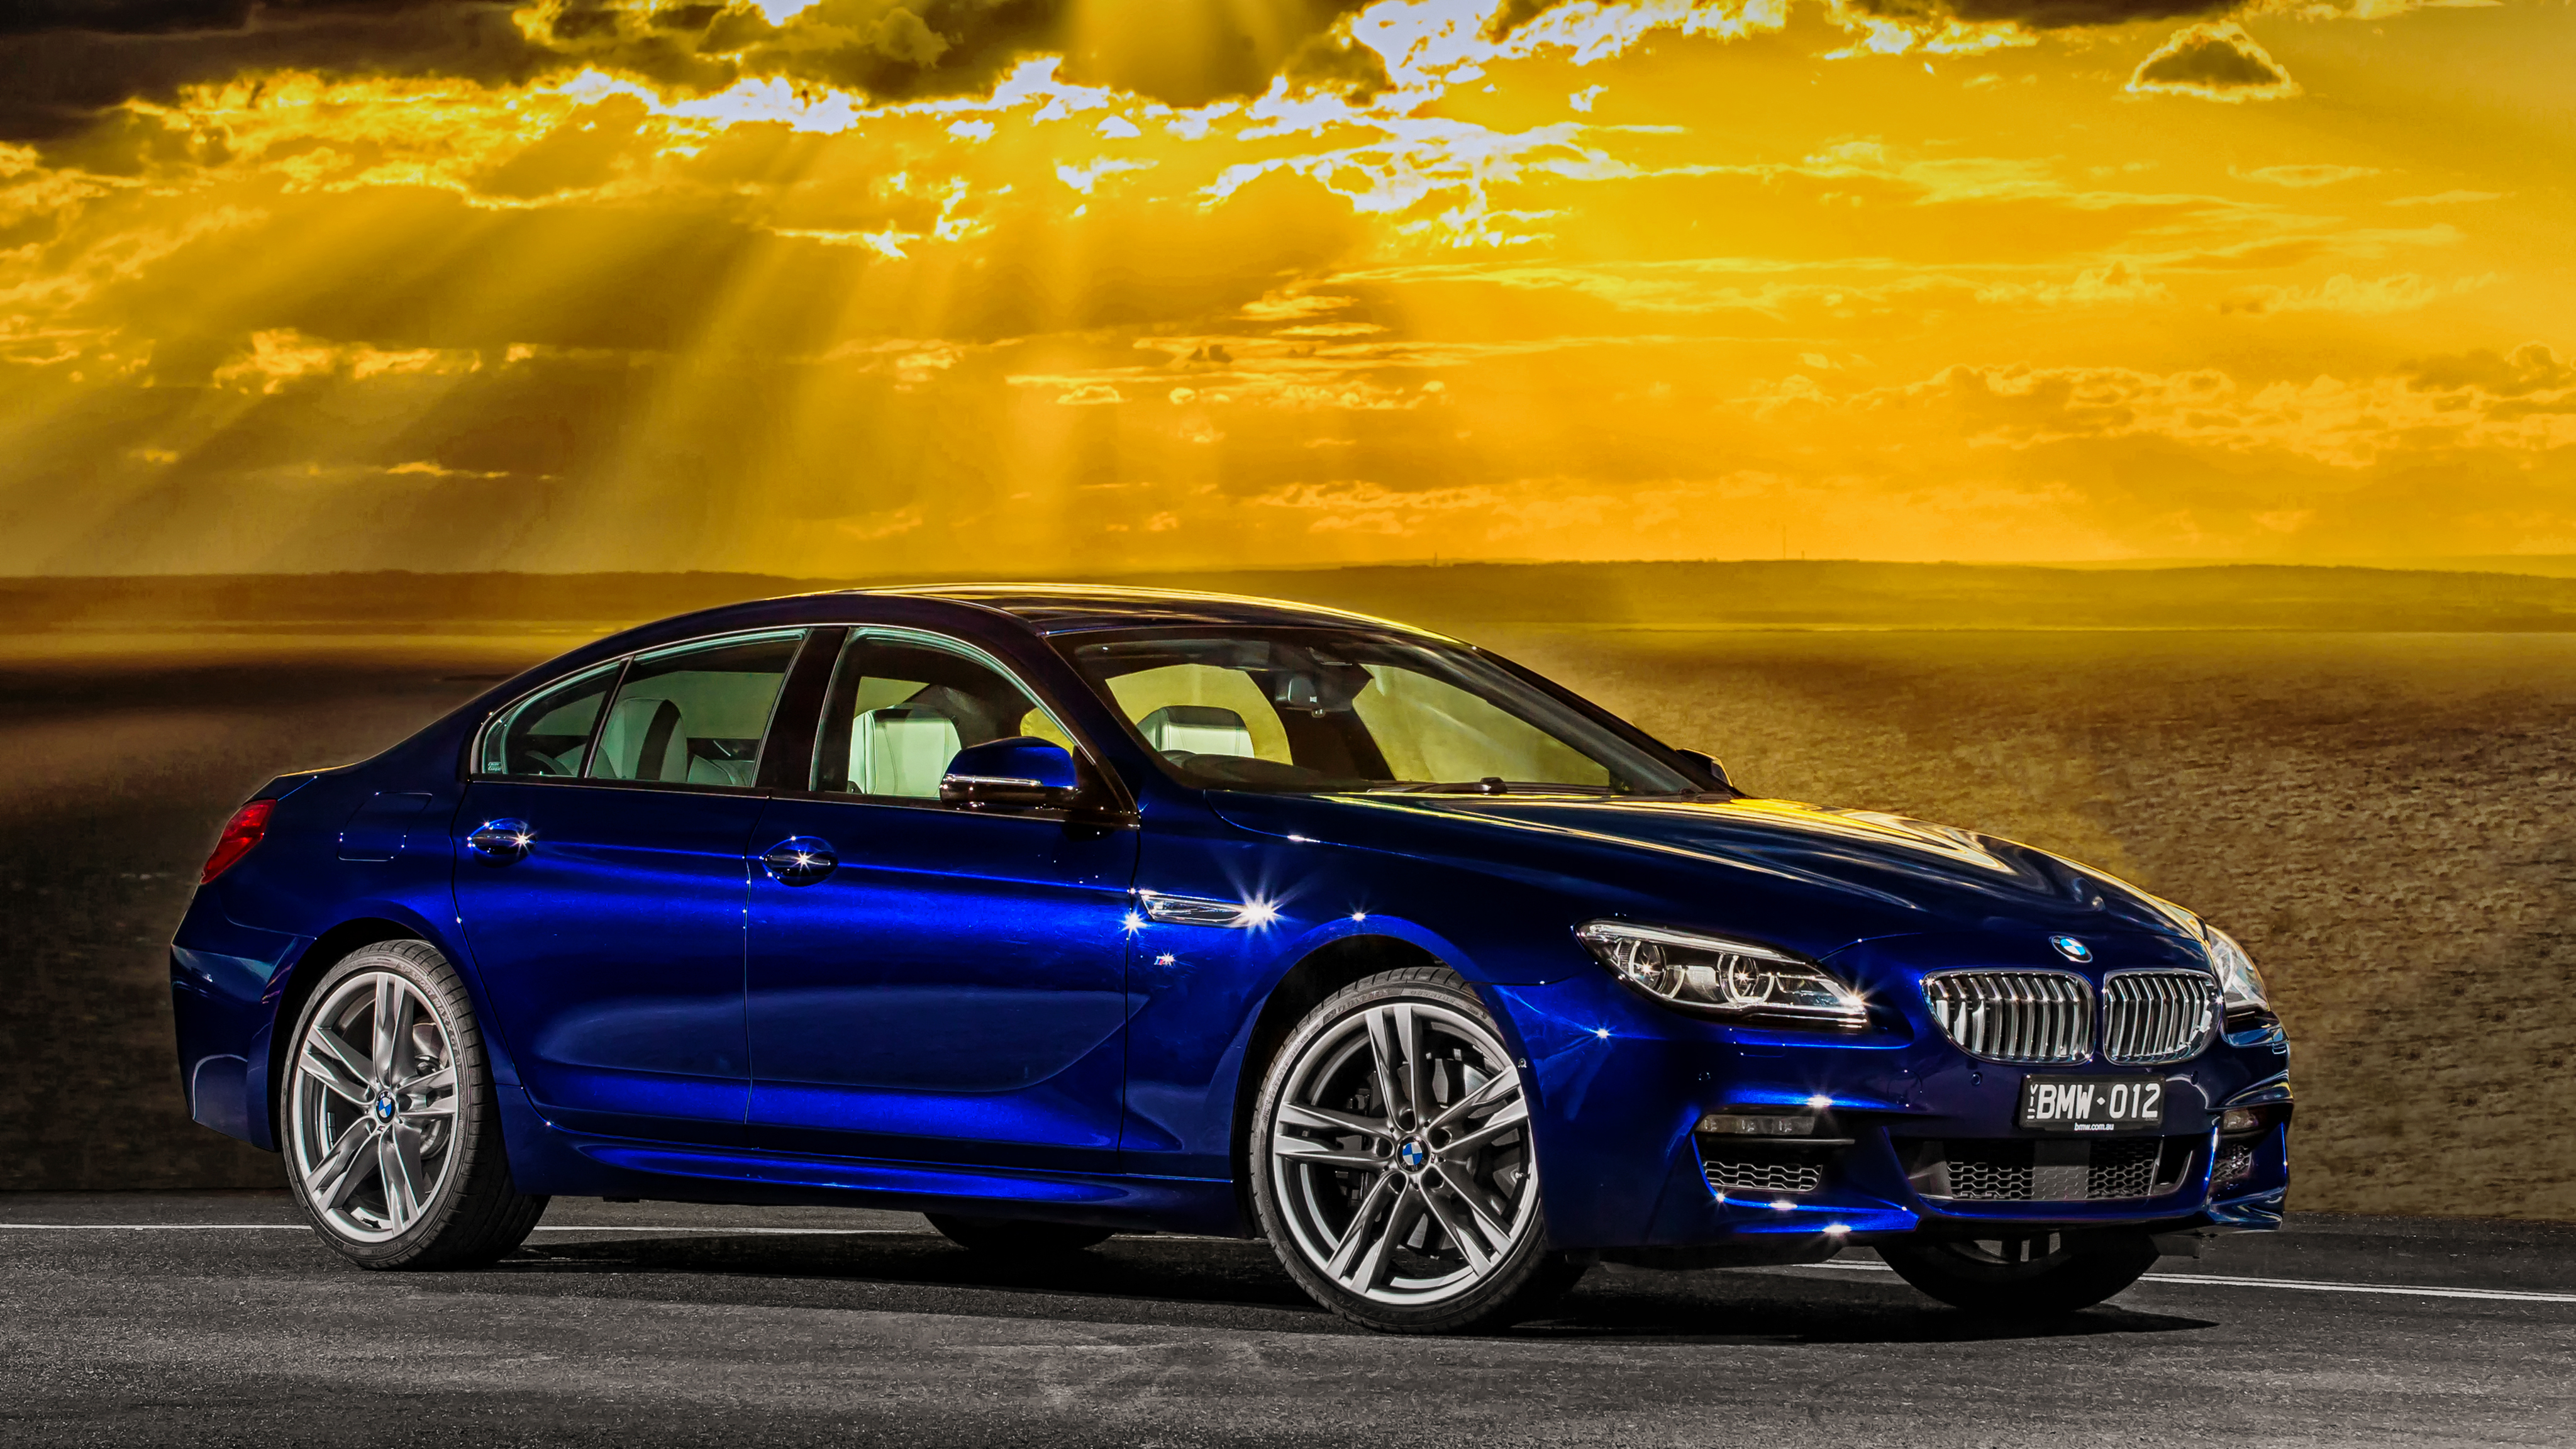 BMW M6 Coupe 4k Ultra HD Wallpaper | Background Image ...